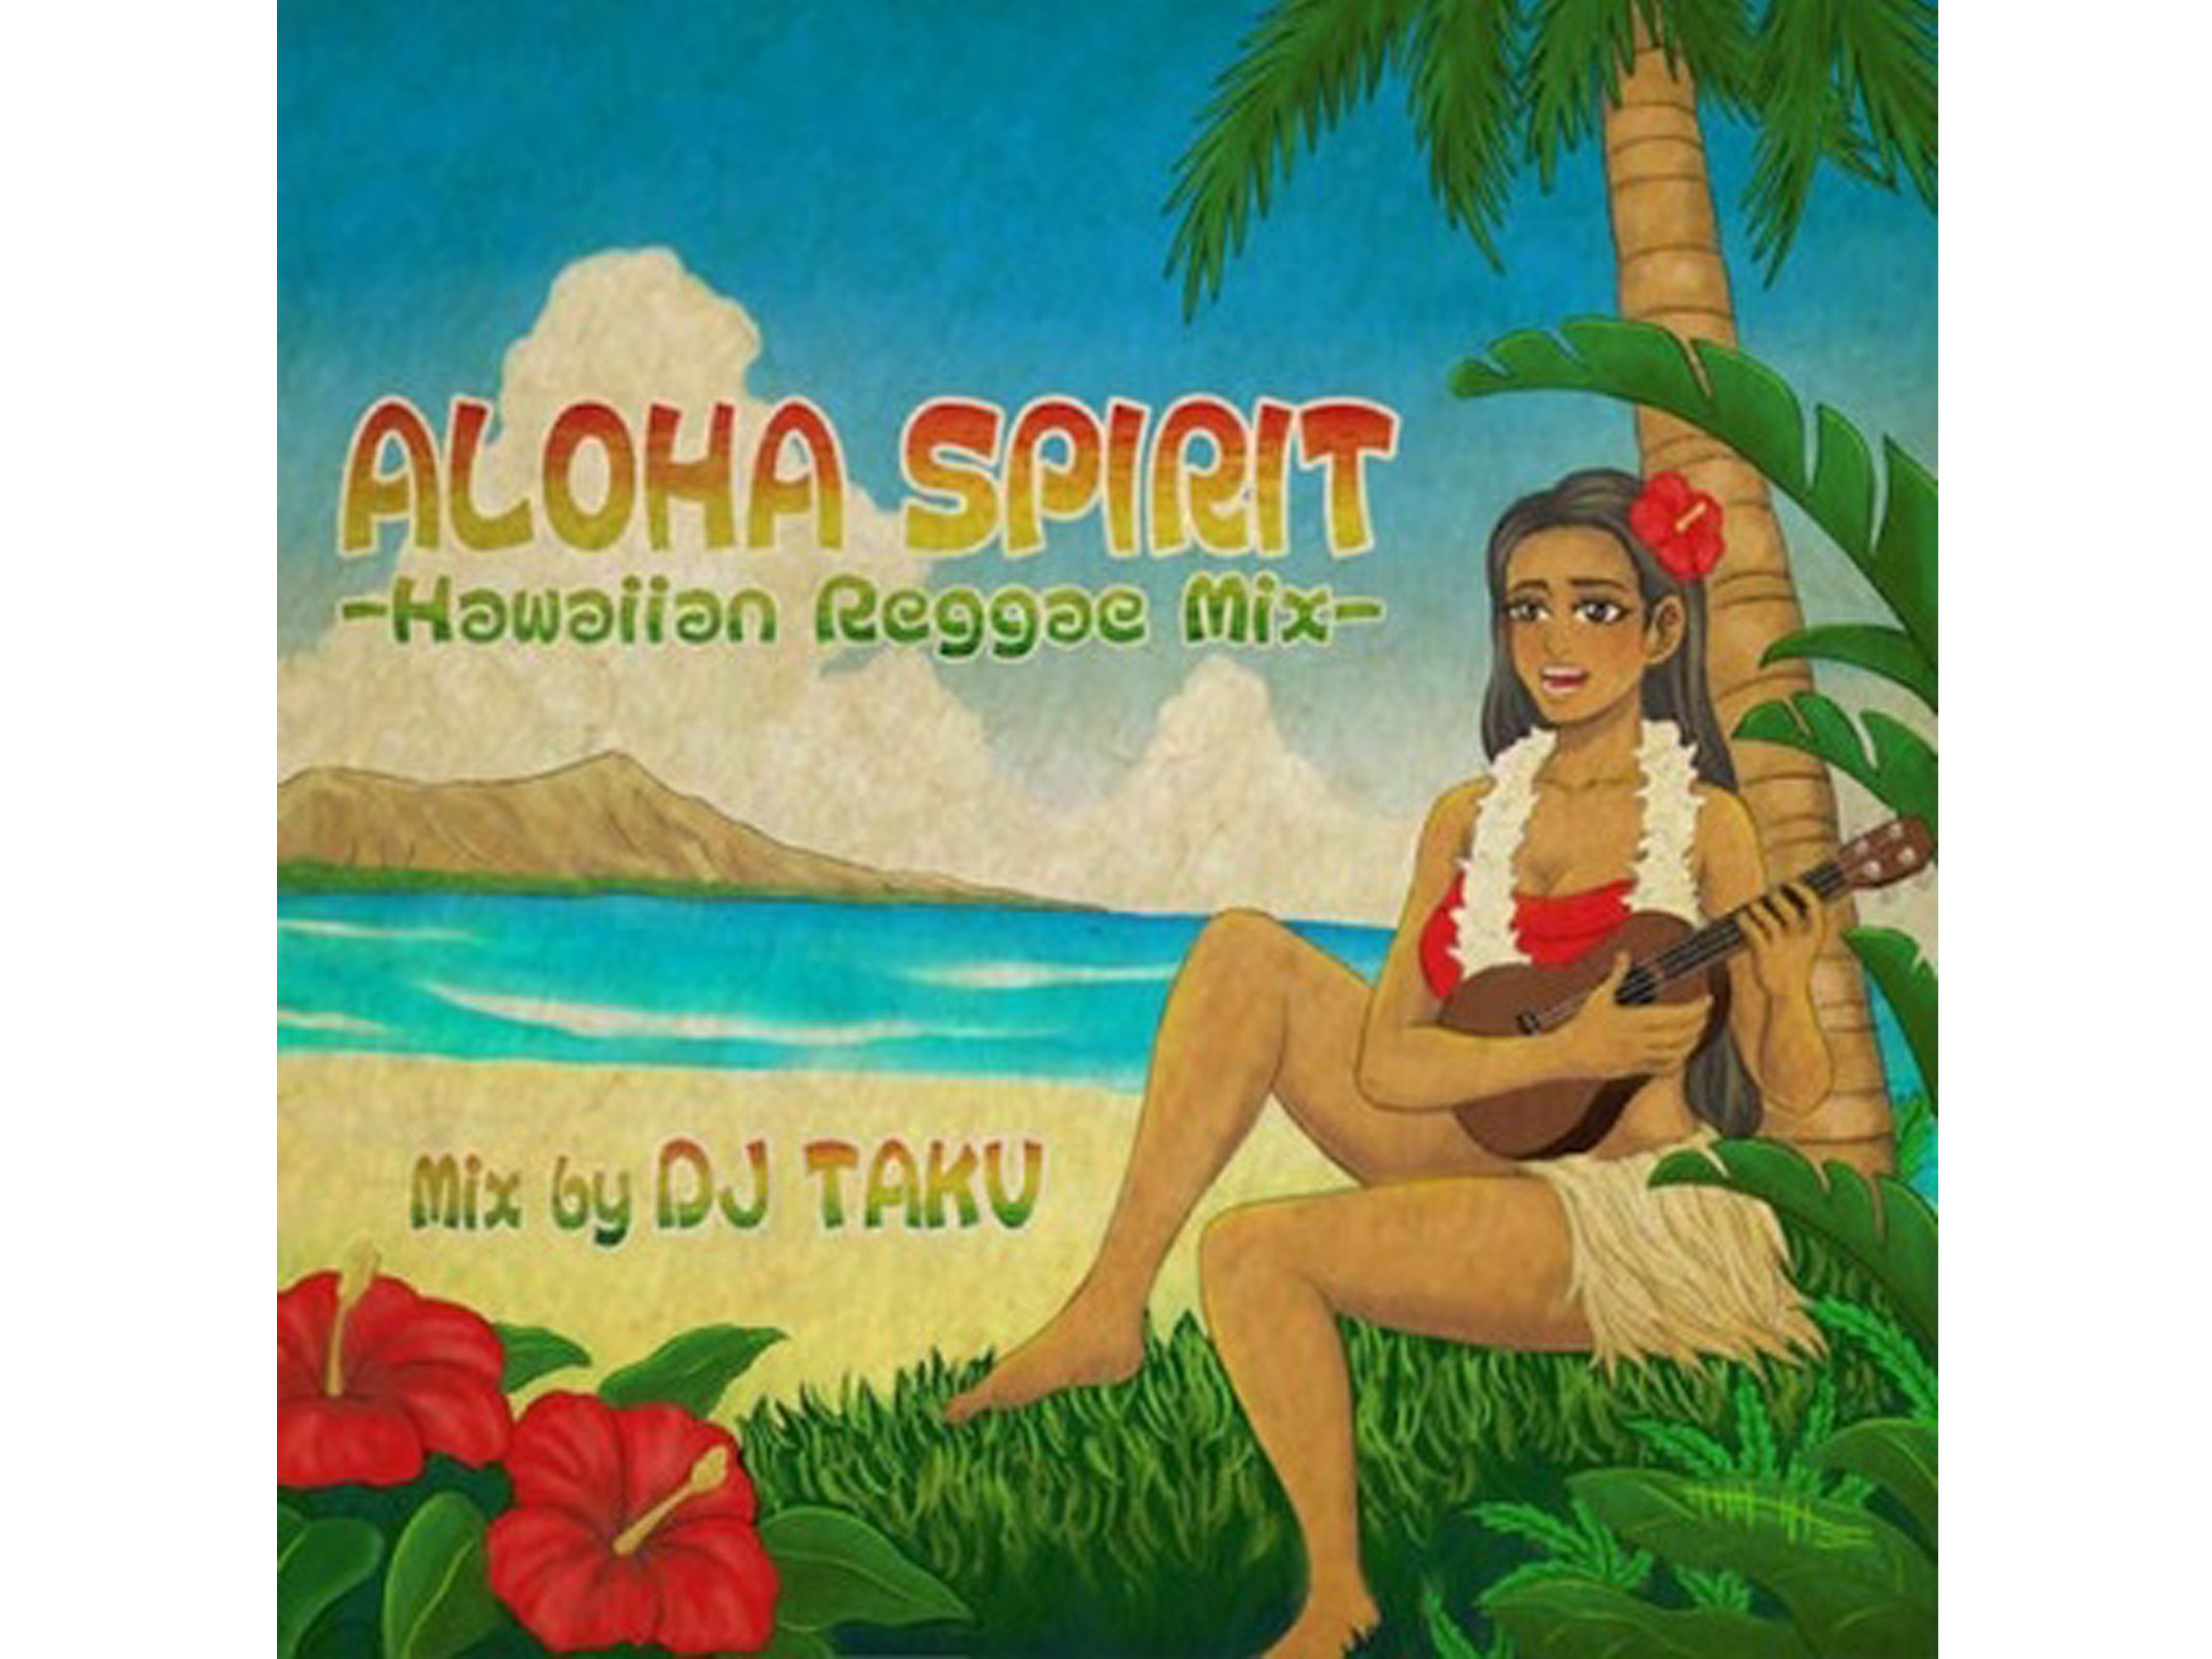 ALOHA SPRIT hawaiian reggae mix- DJ TAKU FROM EMPEROR